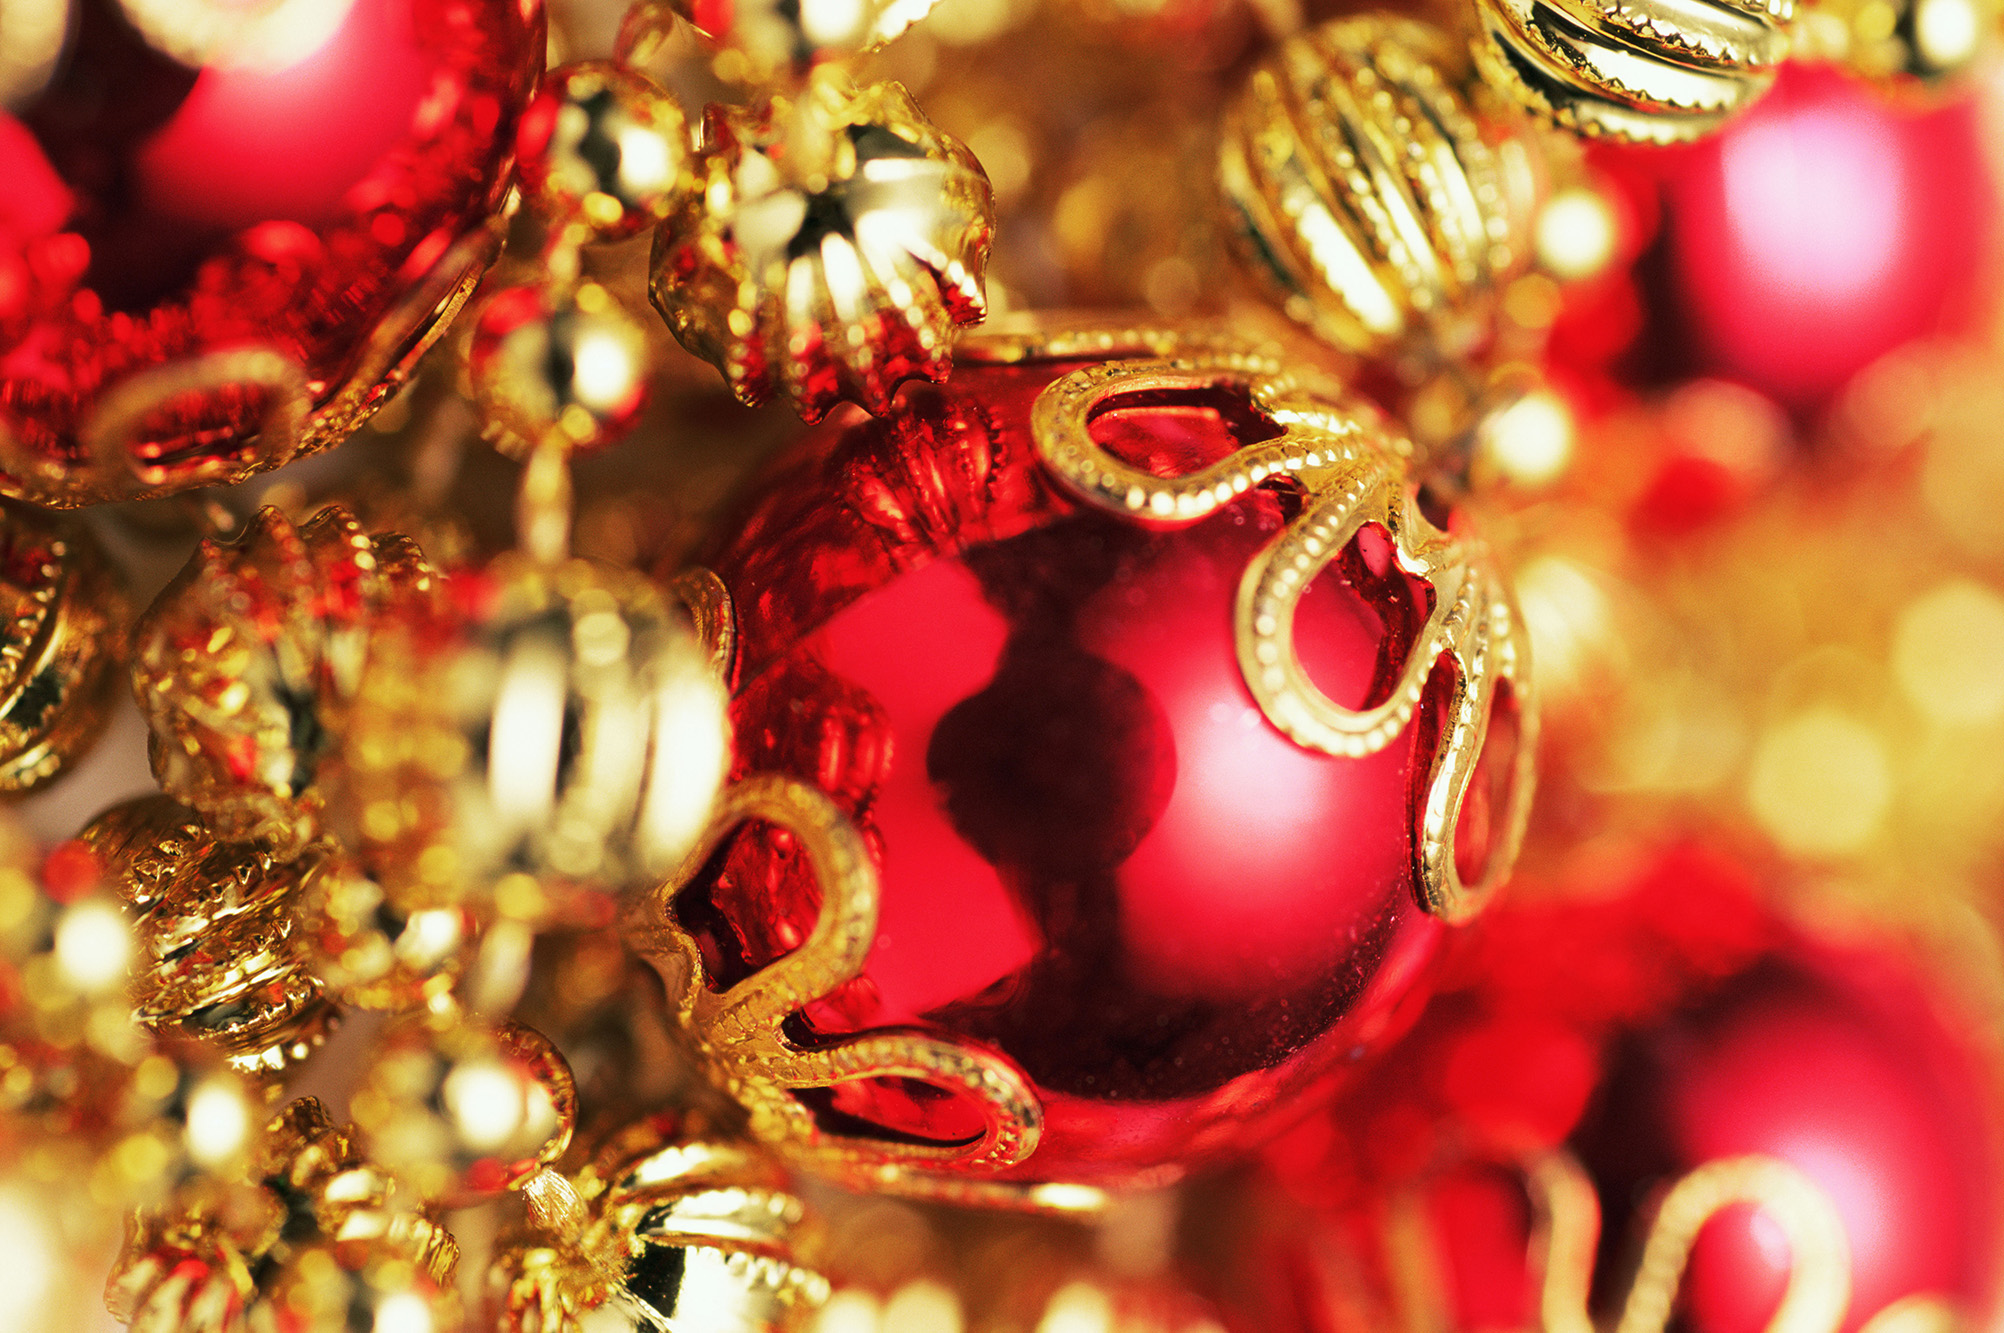 christmas_red_golden_ball_highdefinition_picture_1.jpg